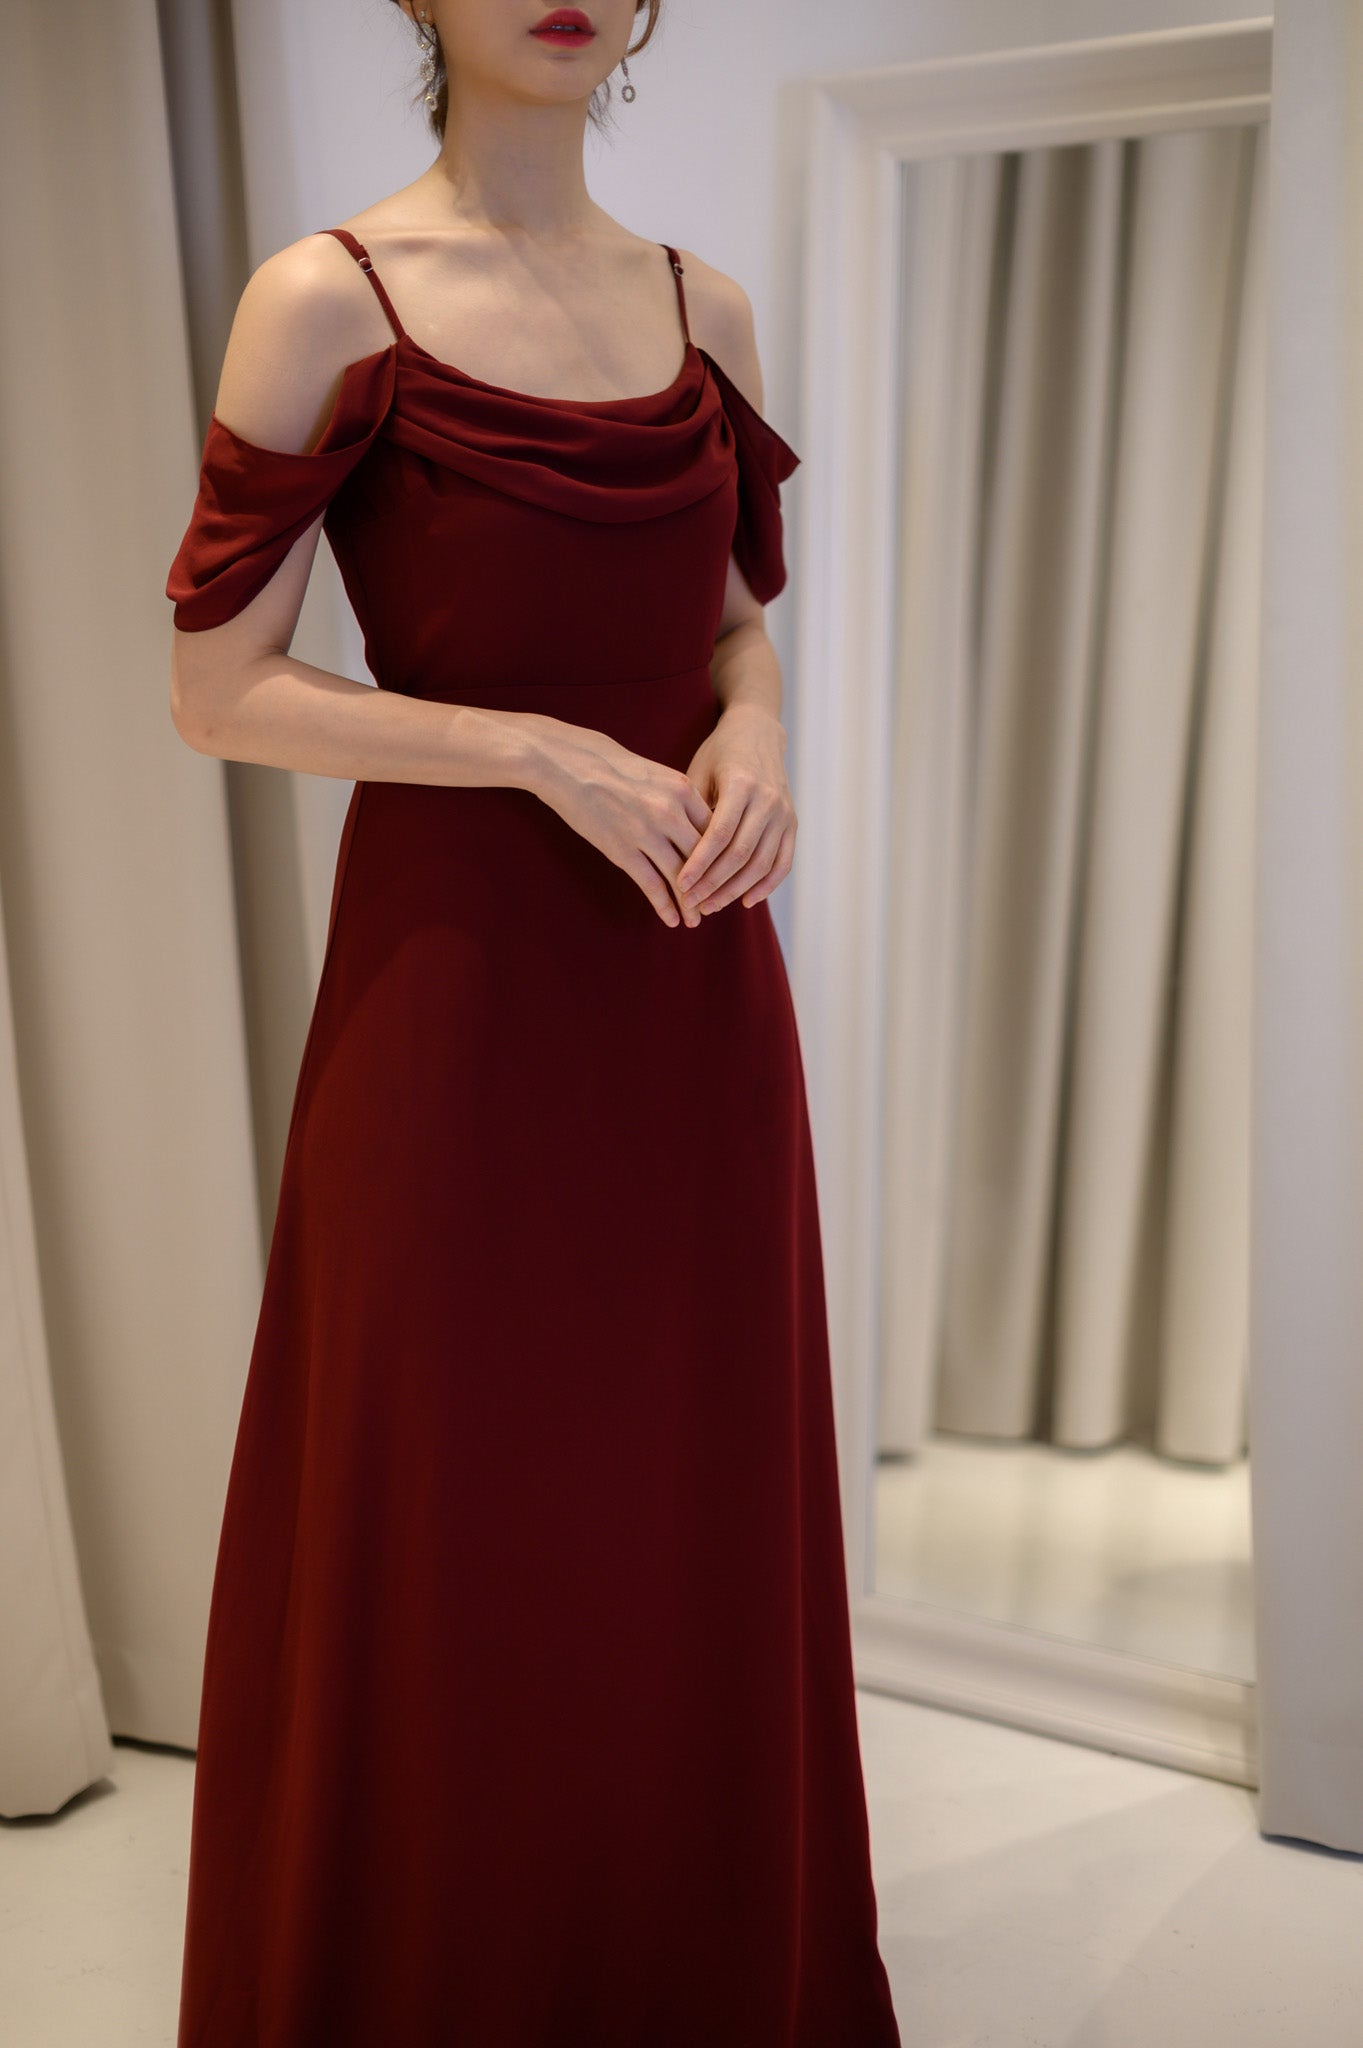 Maroon Chiffon Long Dress